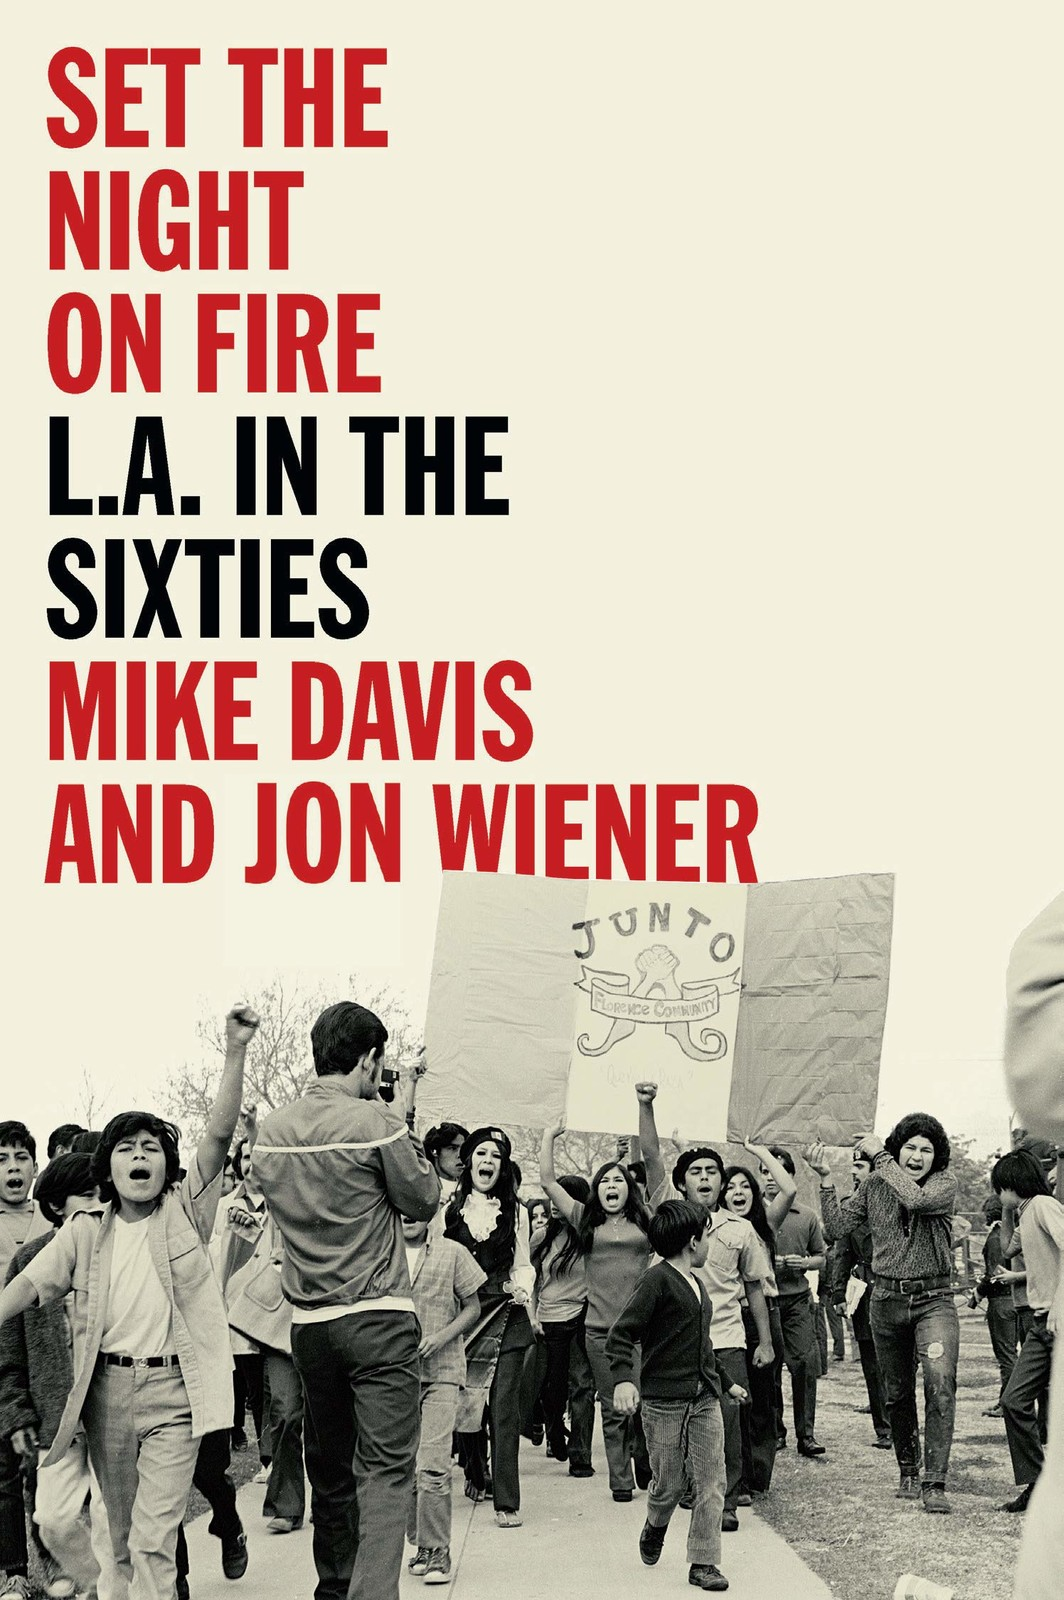 The cover of Set the Night on Fire: L.A. in the Sixties